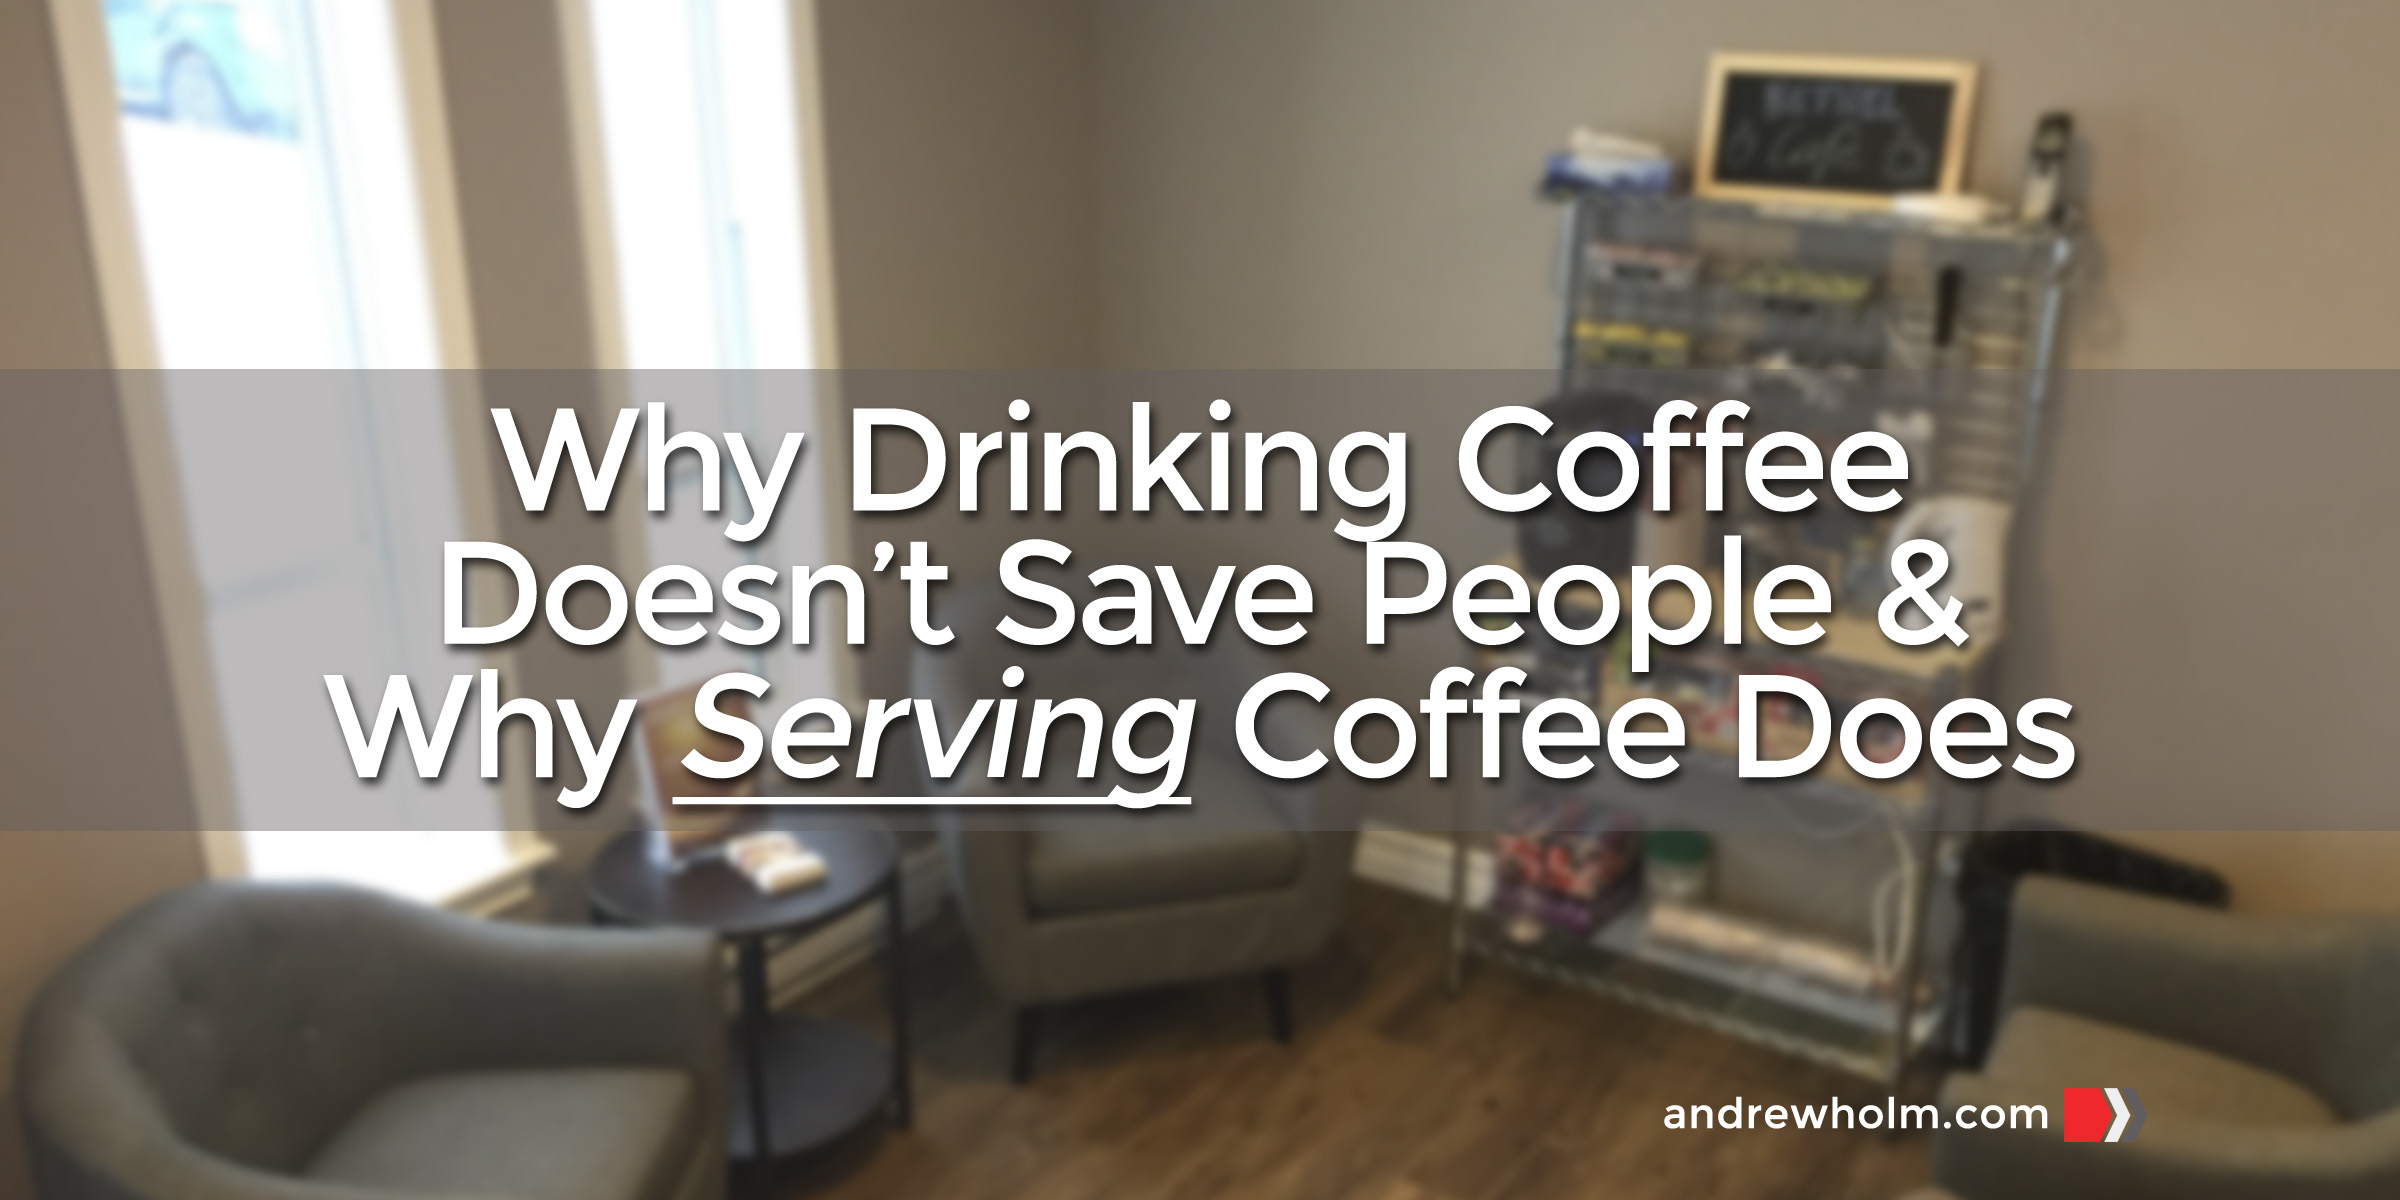 Why Drinking Coffee Doesn't Save People and Why Serving Coffee Does